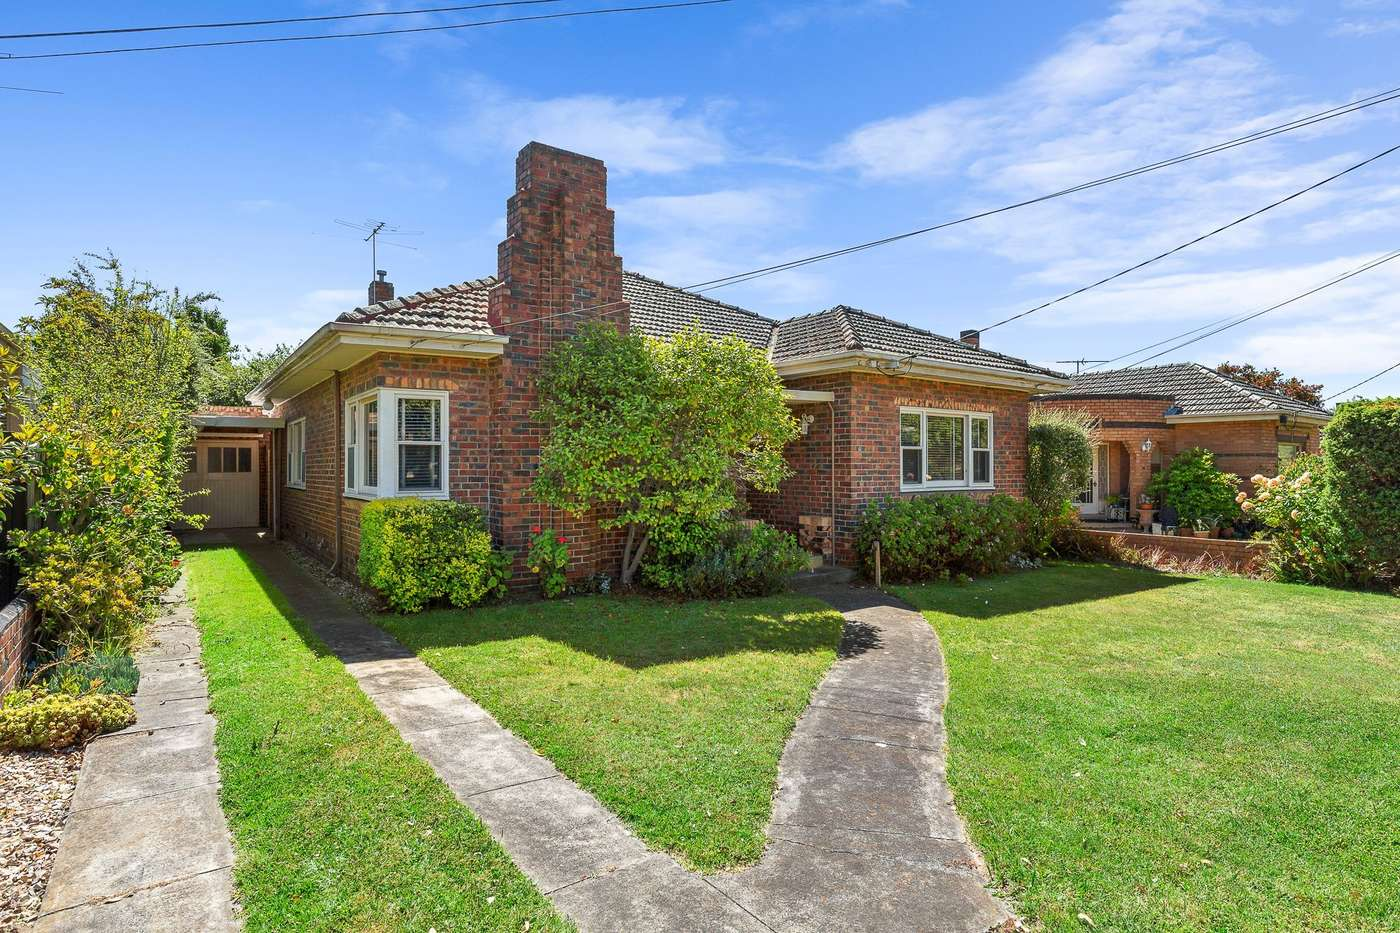 Main view of Homely house listing, 25 Peterleigh Grove, Essendon, VIC 3040